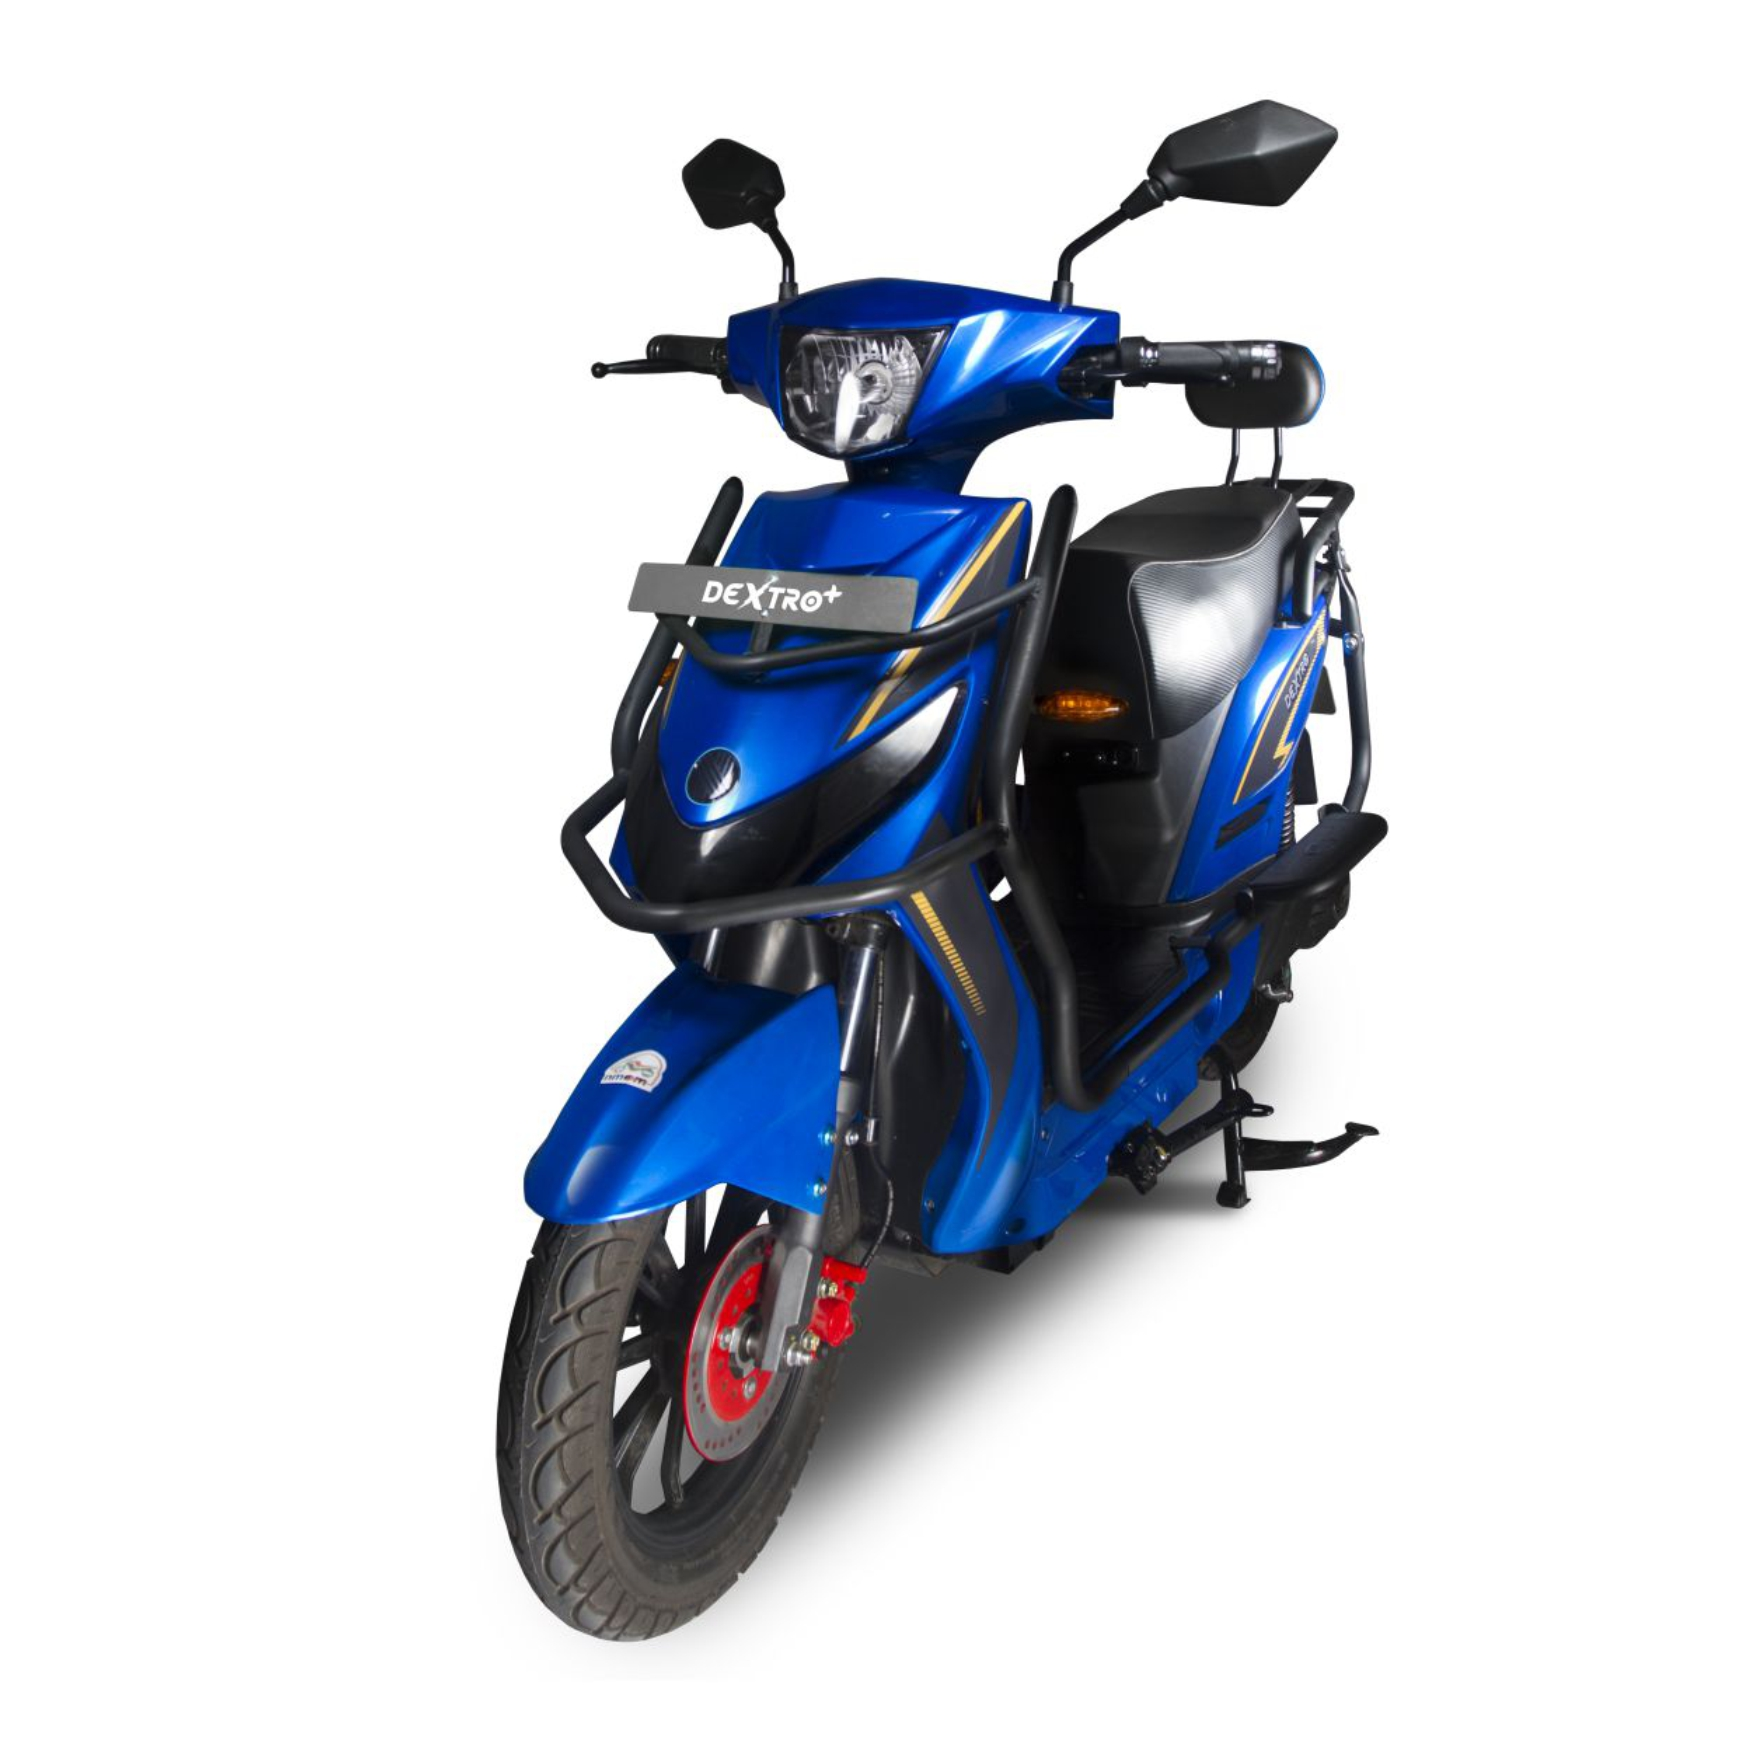 Increased Subsidy For Electric 2-Wheelers by Govt. Under FAME-II Scheme Will Increase Adoption and Stimulate R&D